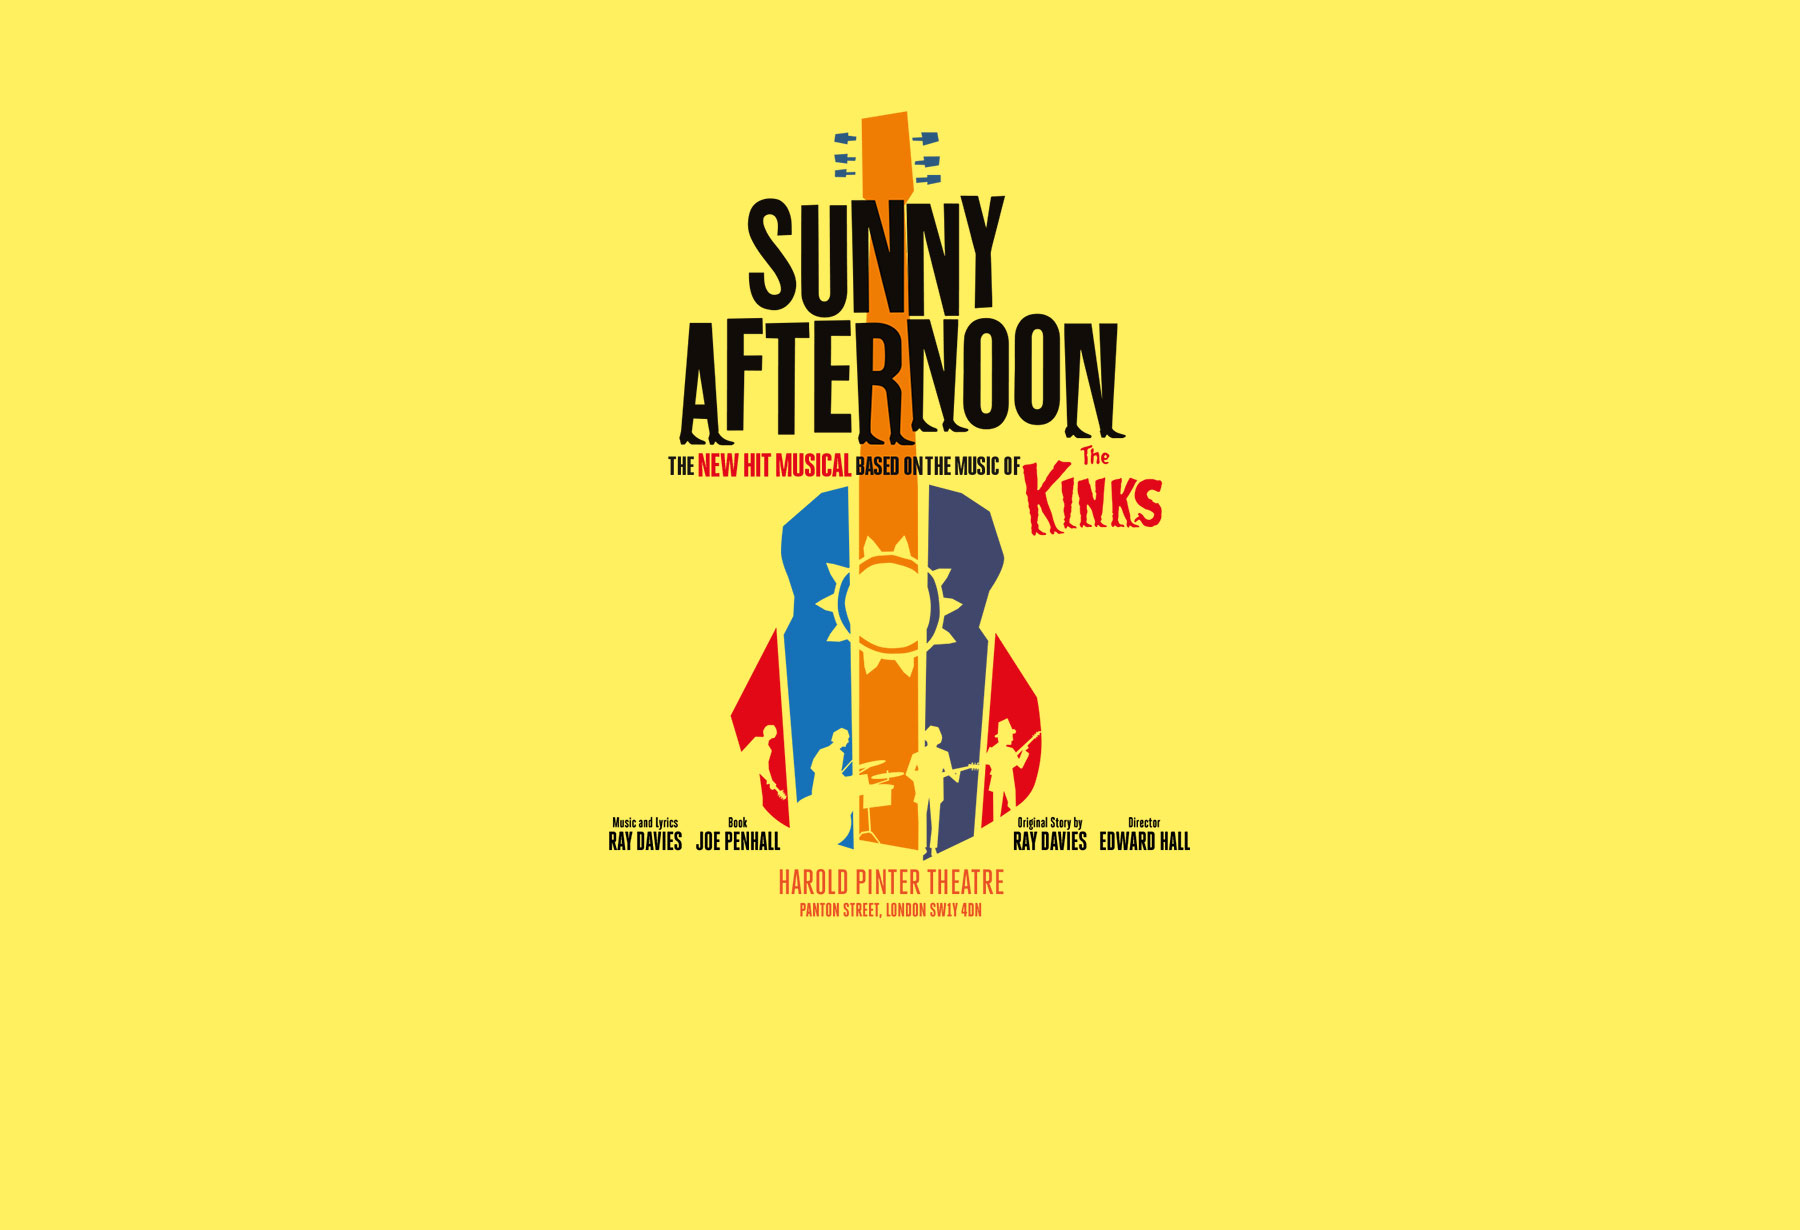 Image Courtesy of: Sunny Afternoon the Musical